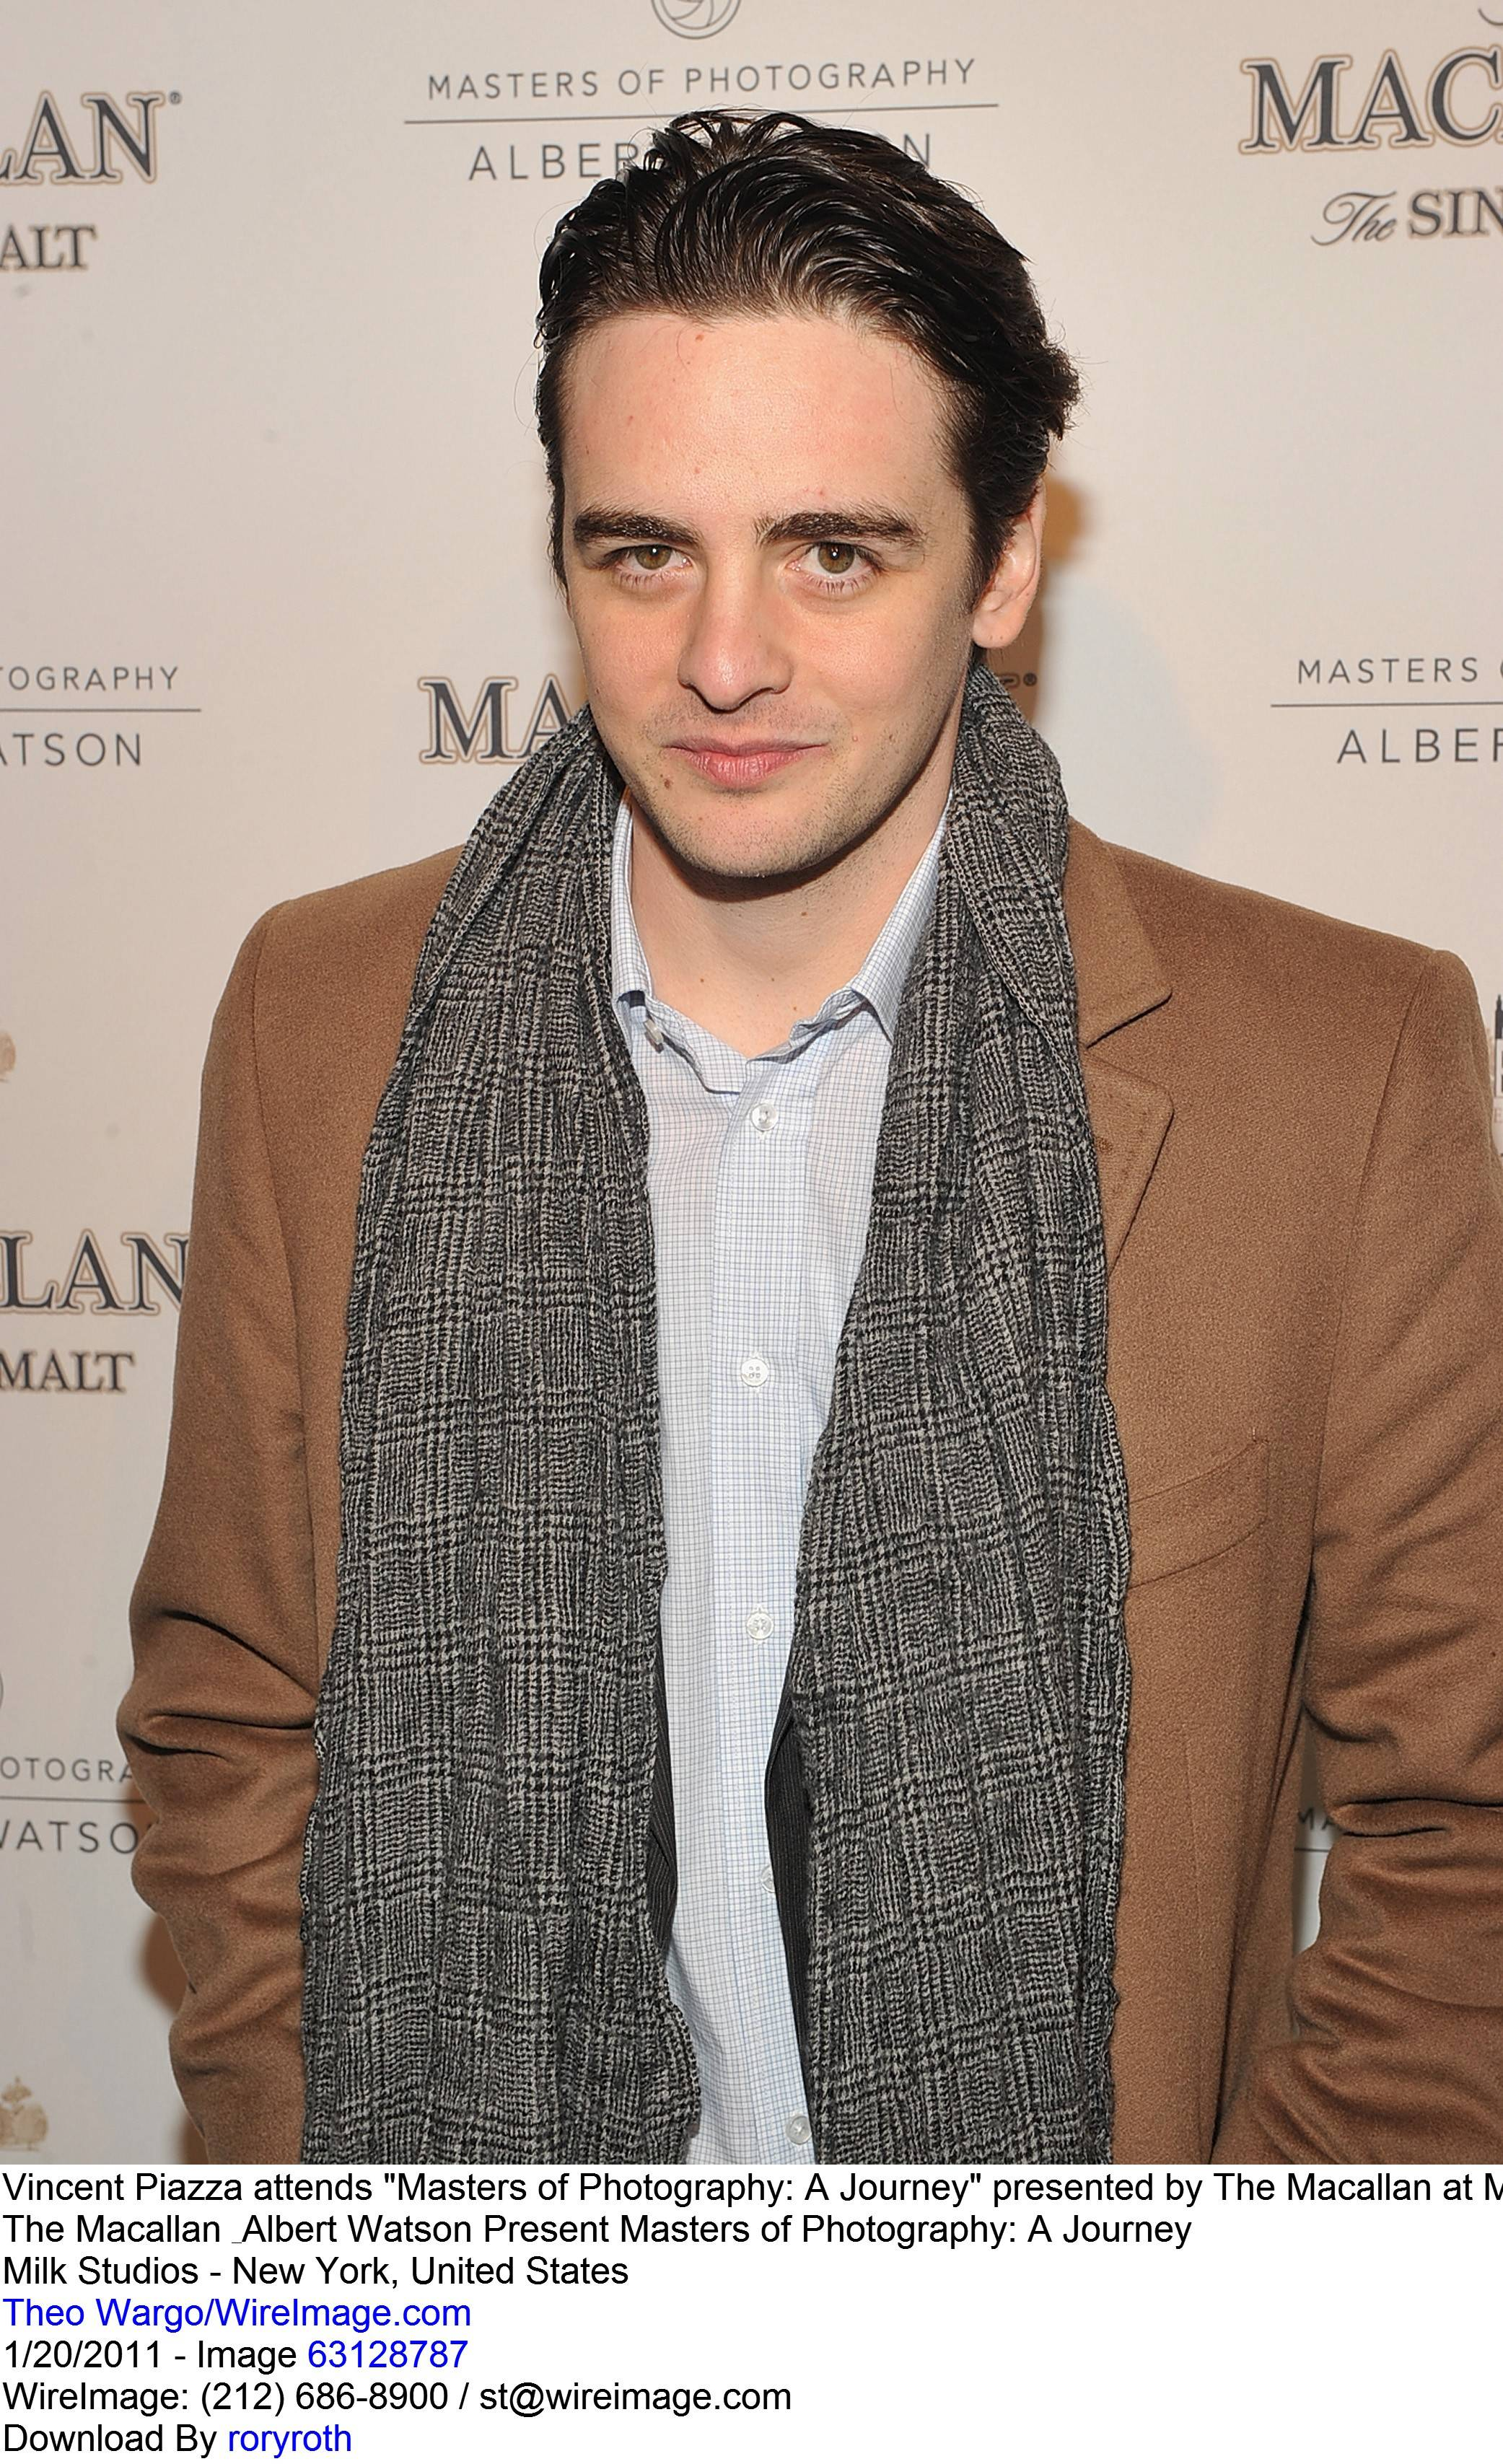 Vincent Piazza attends